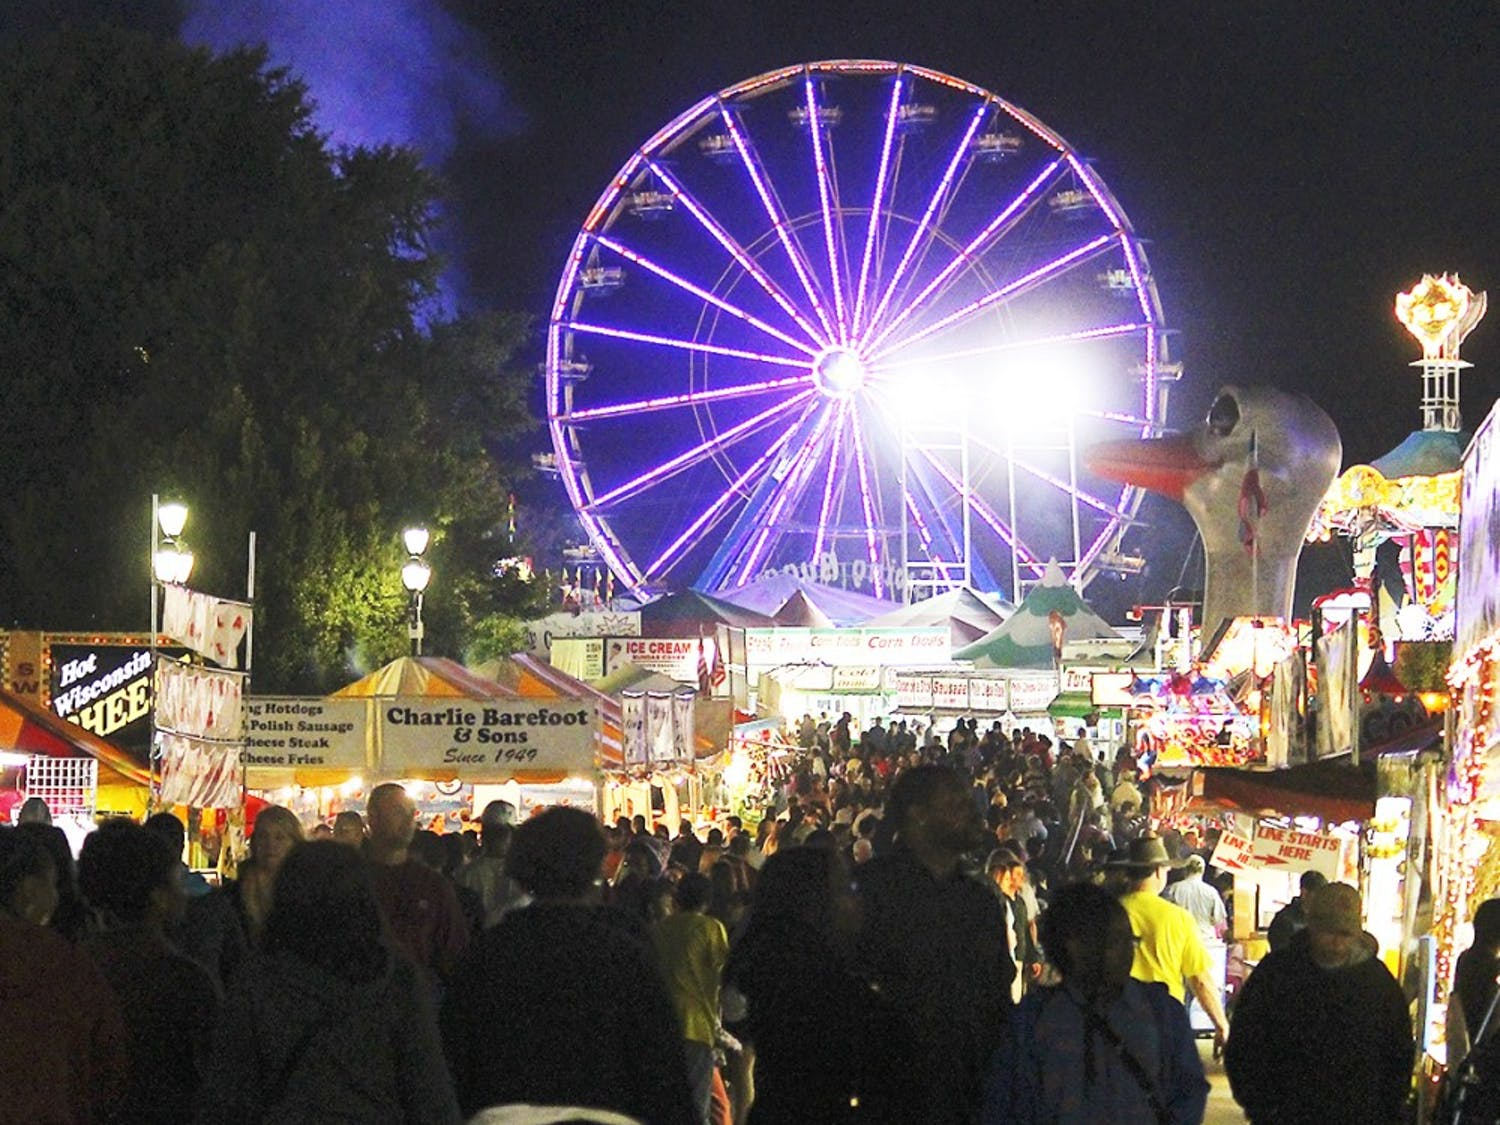 The N.C. State Fair, located on Blue Ridge Road, had an estimated attendance of around a million.